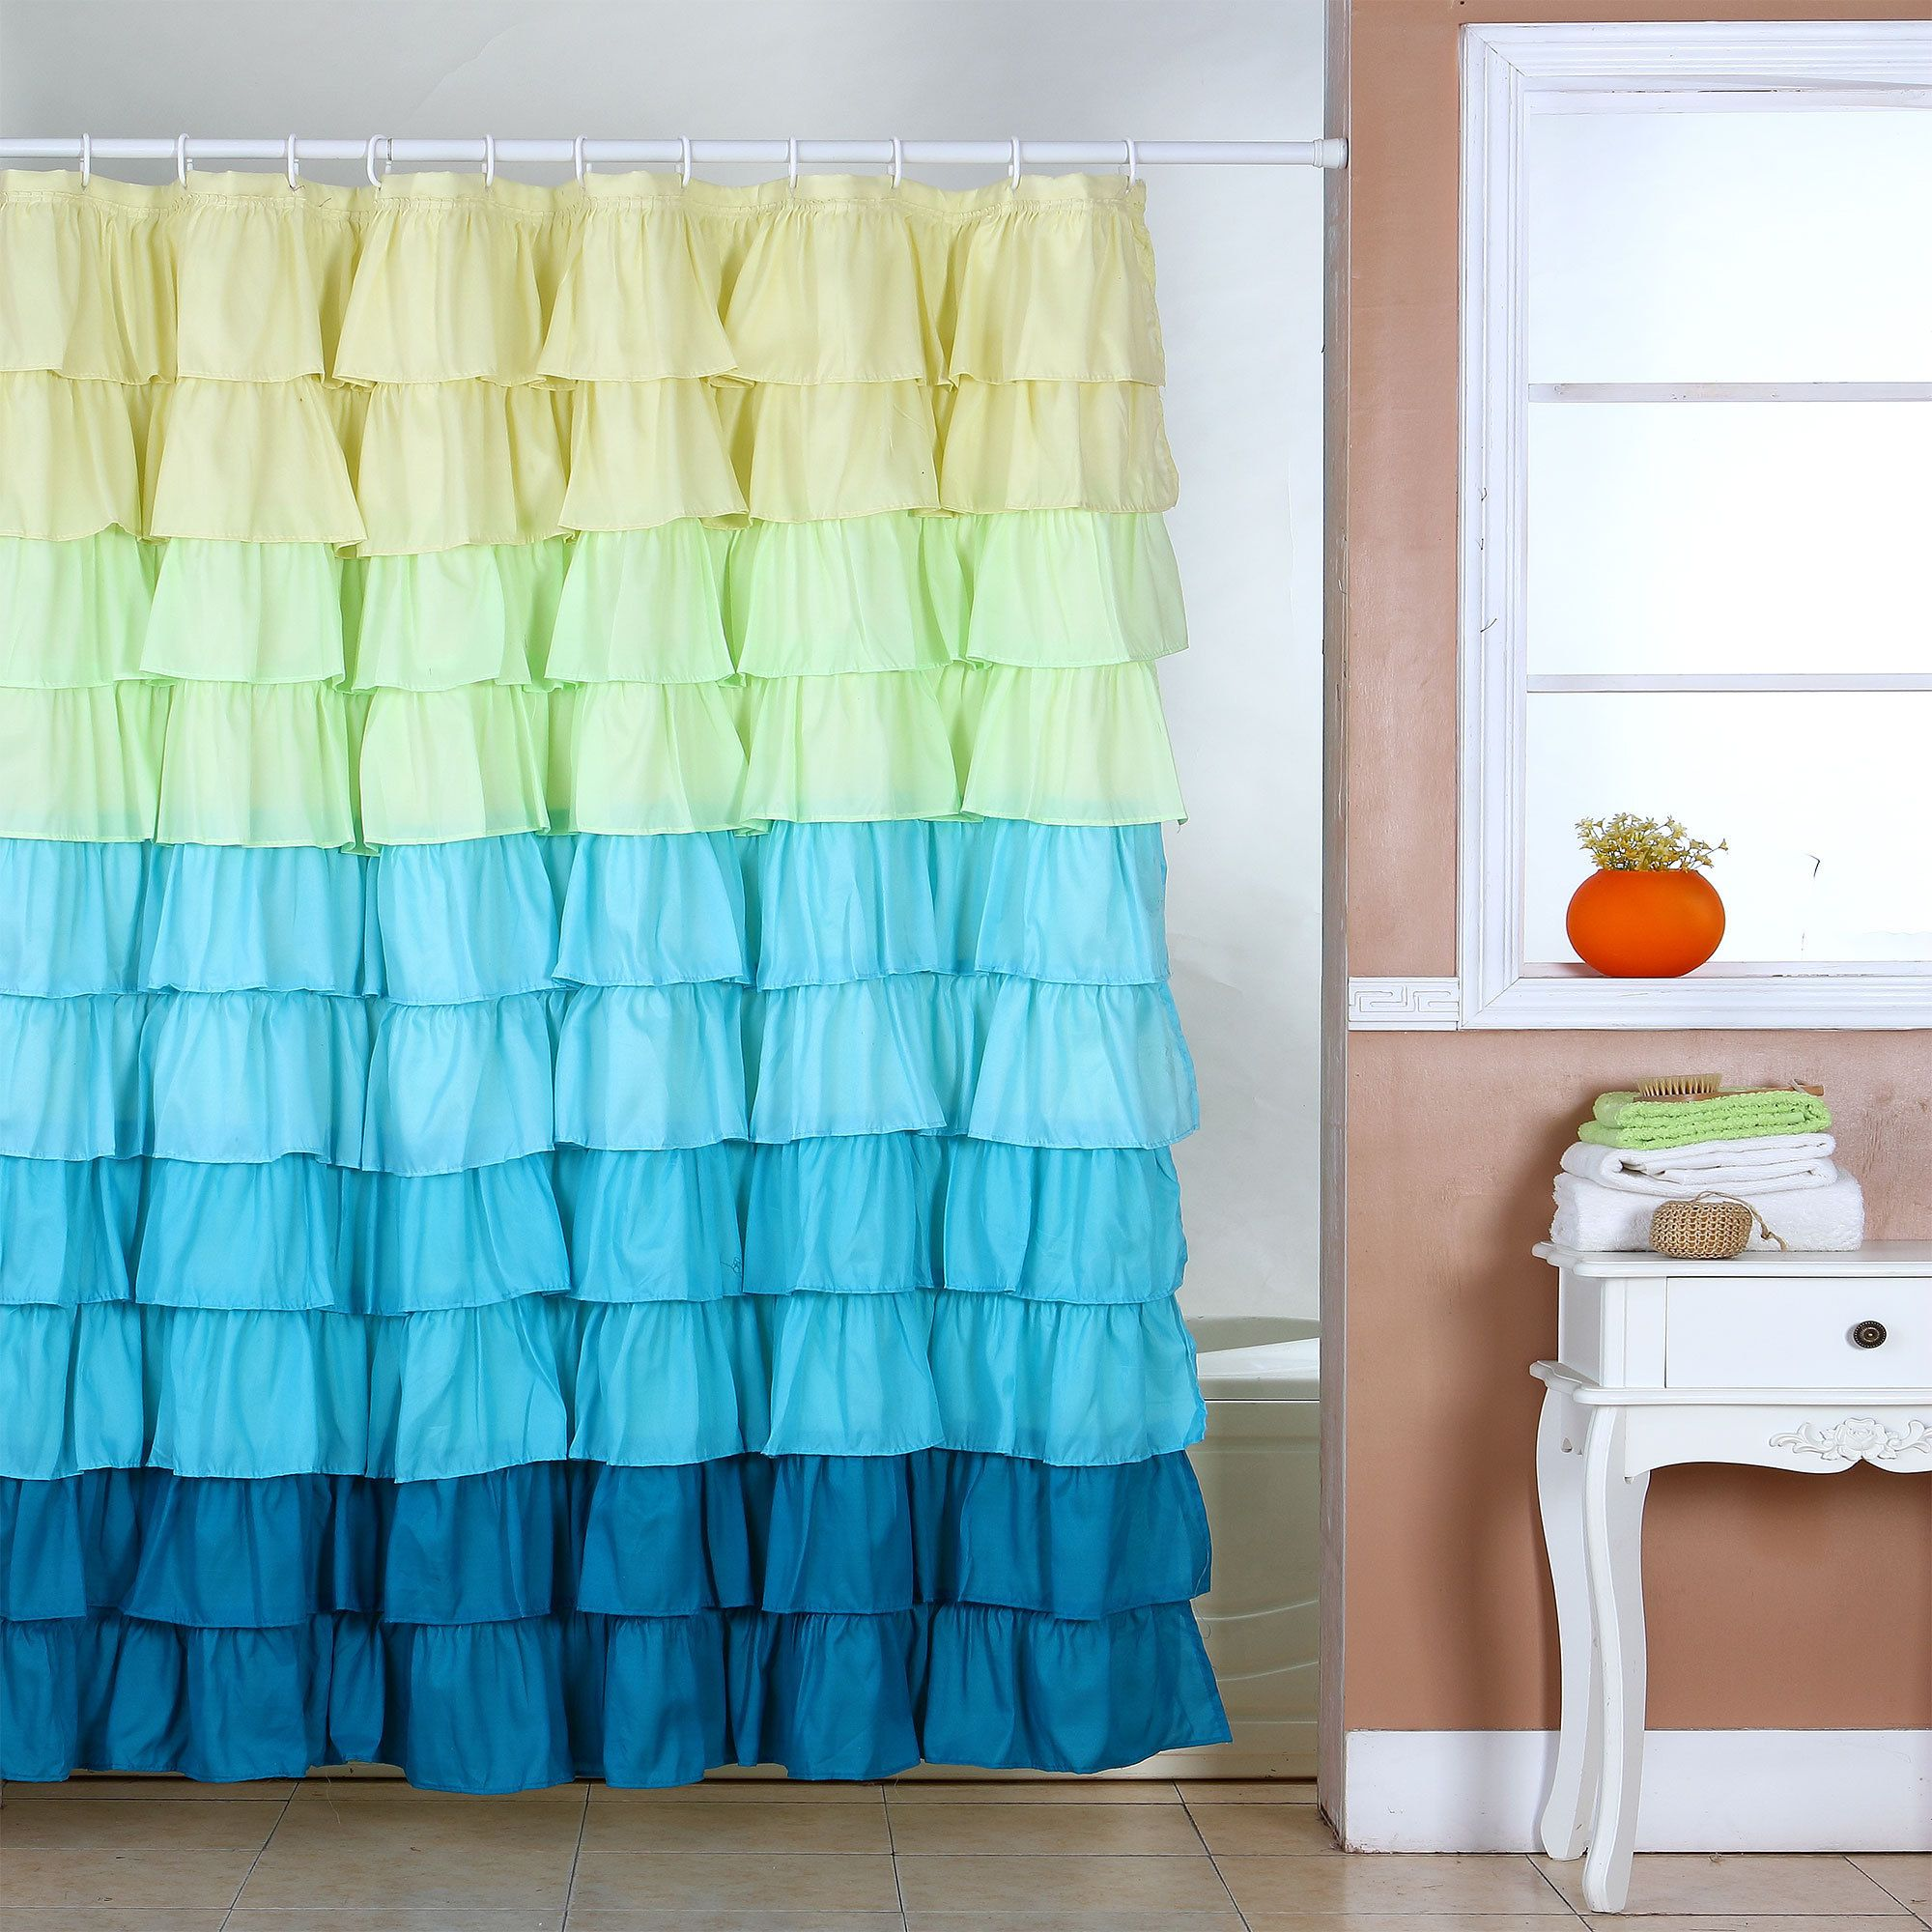 Windsor Home Sky Blues Ruffle Shower Curtain with Buttonholes ...